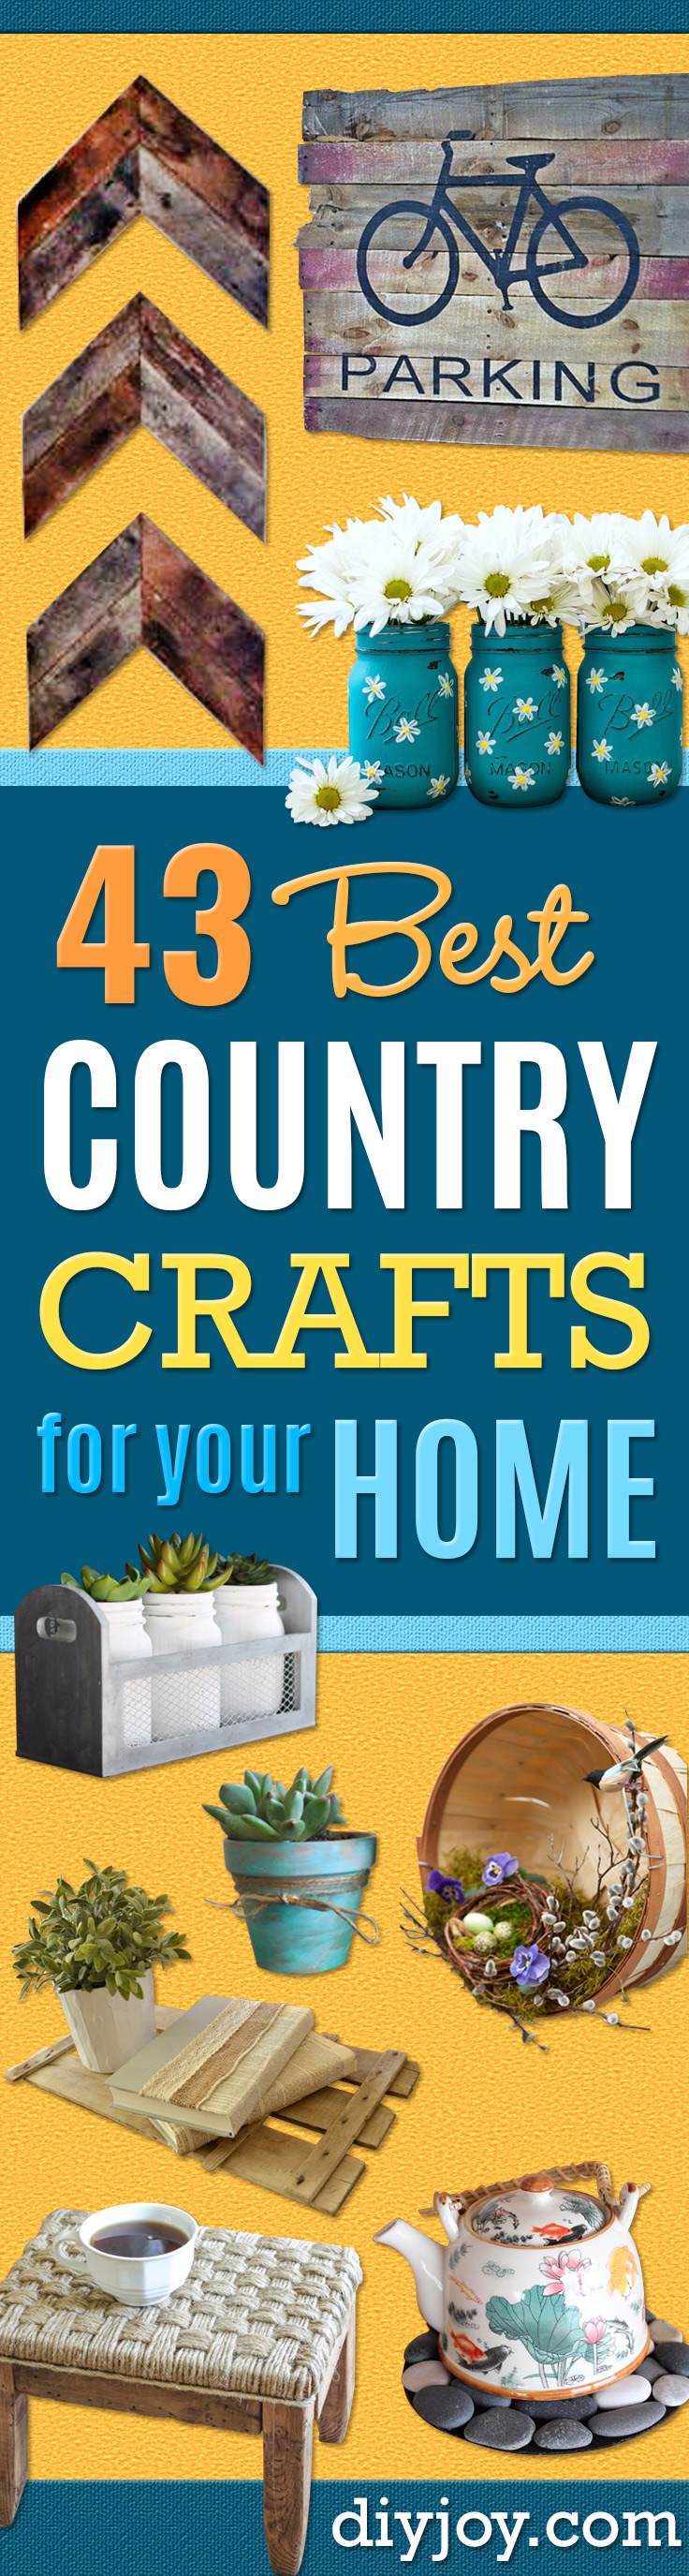 43 best country crafts for your home for Country craft house